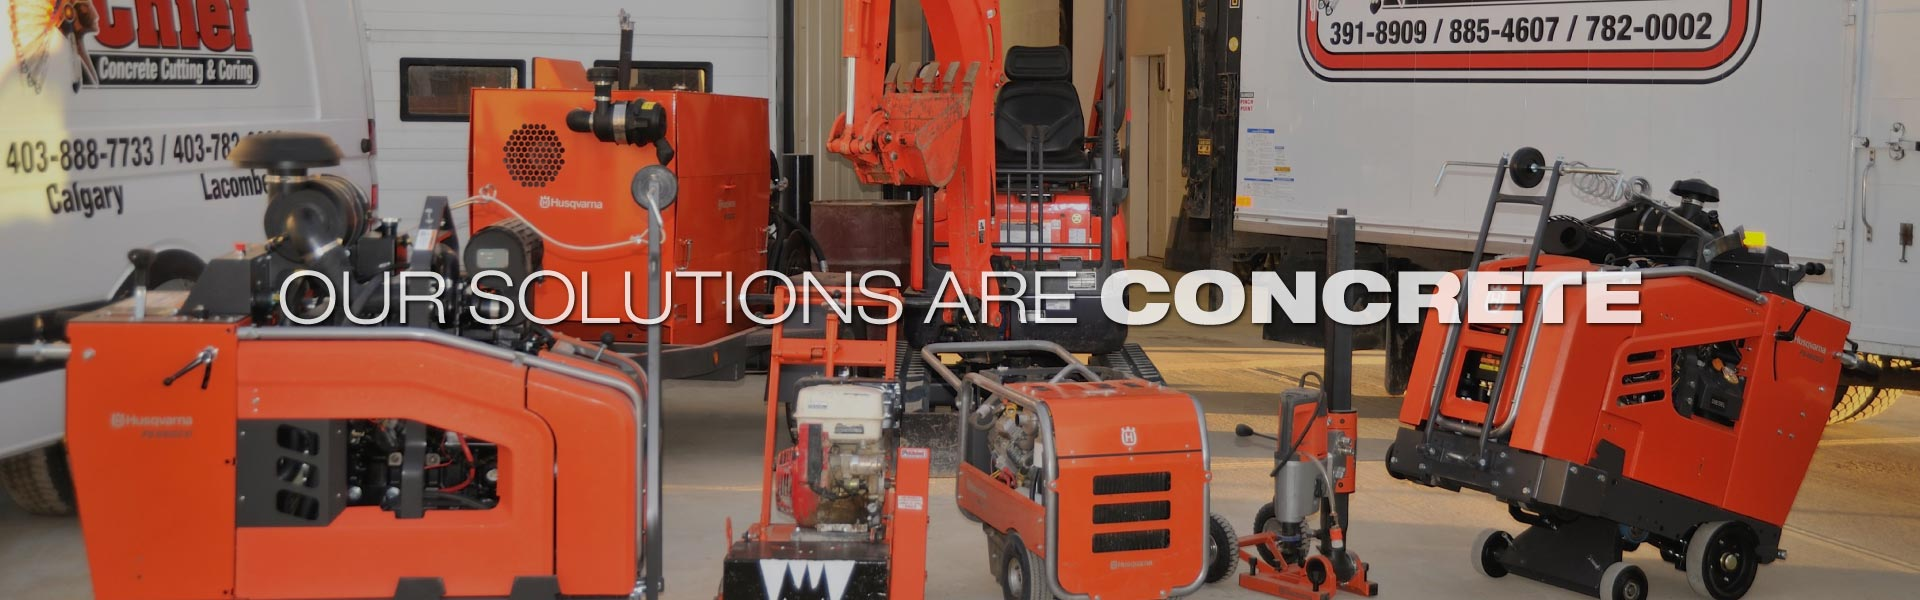 Our Solutions are Concrete | Chief Concrete Cutting & Coring equipment